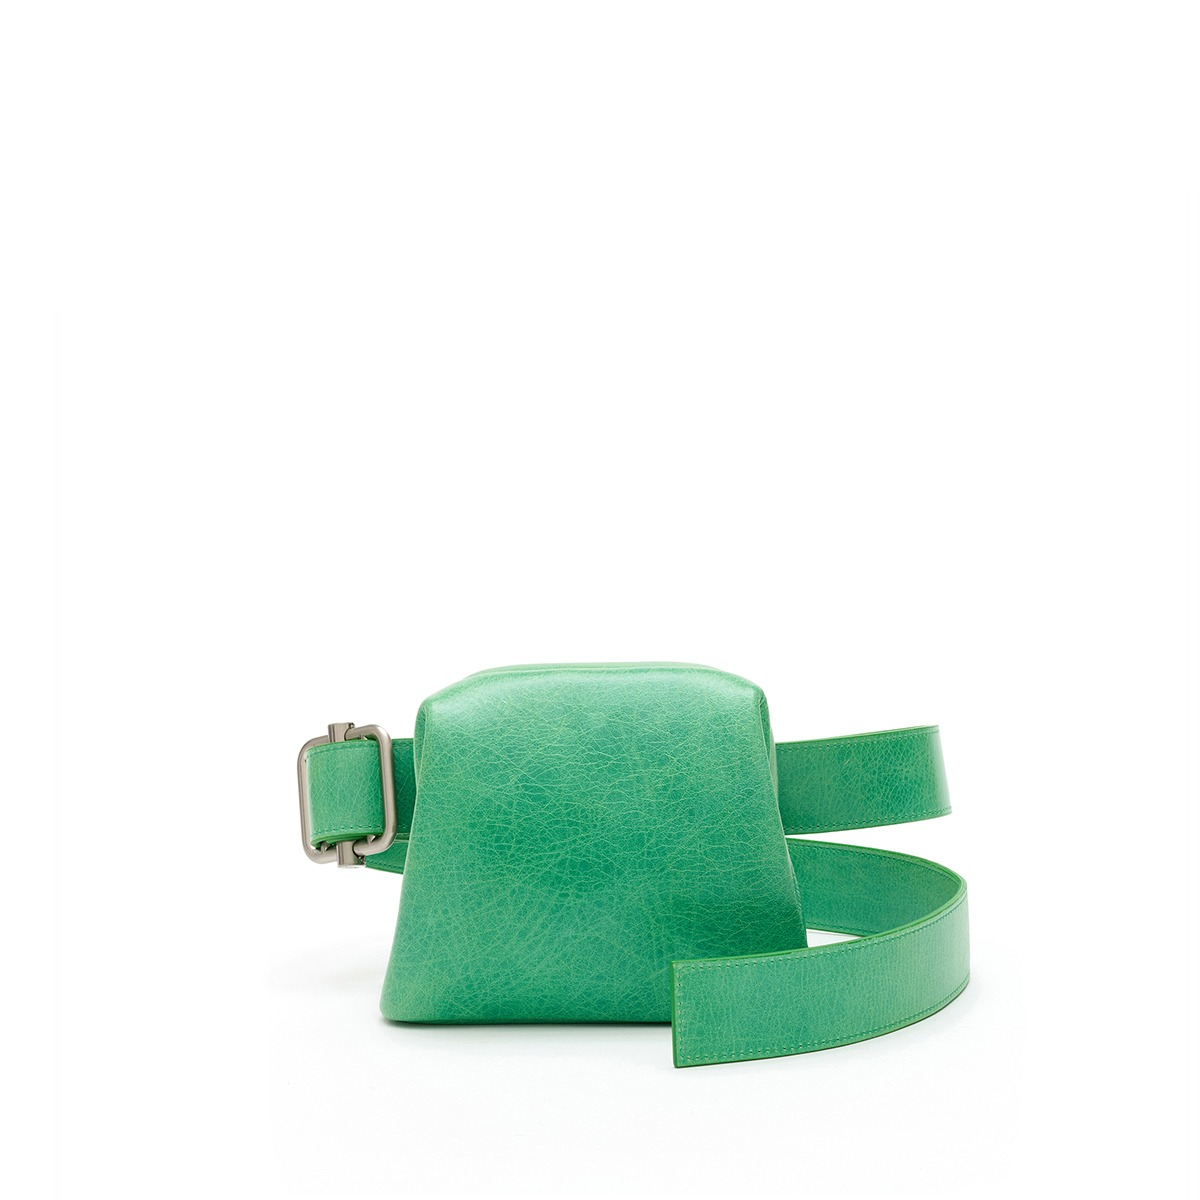 PEANUT BROT [WASHED GREEN]